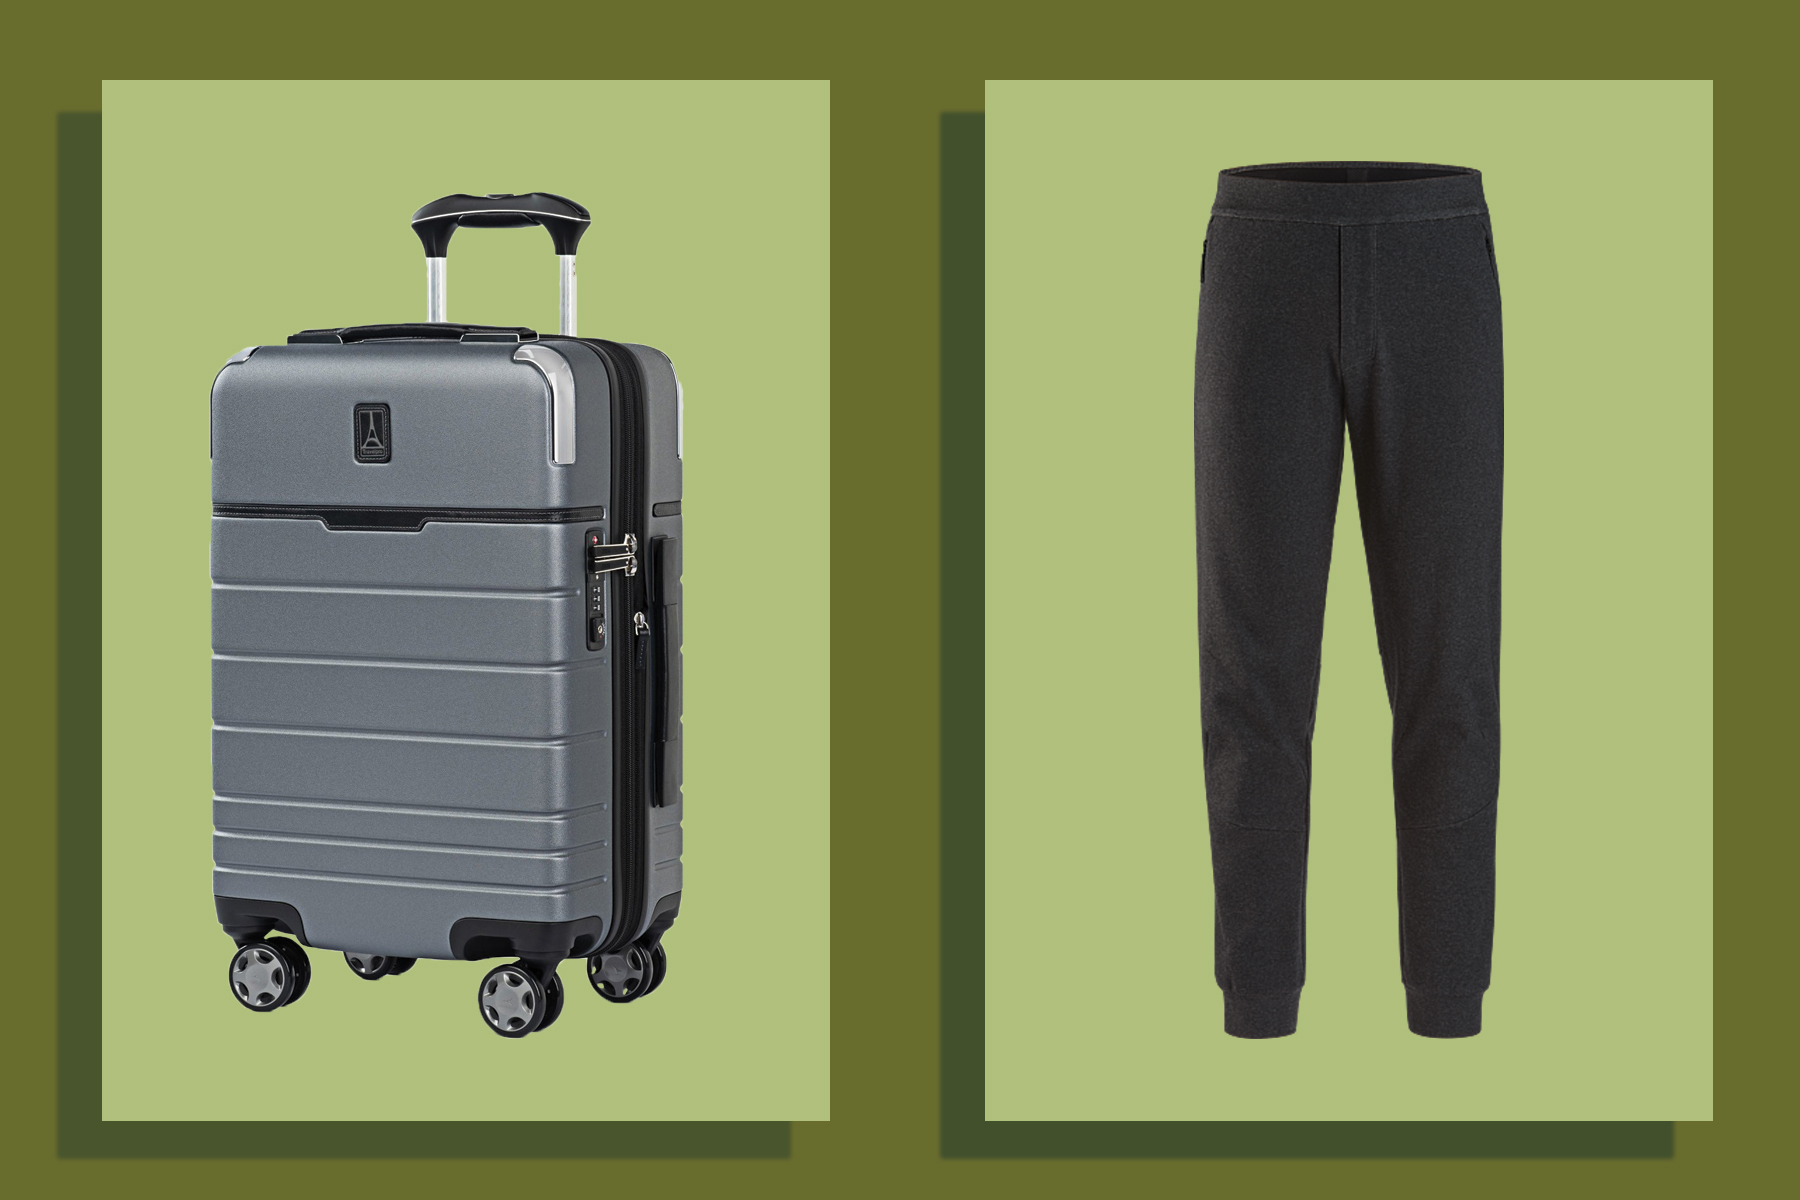 Suitcase and jogger sweatpants